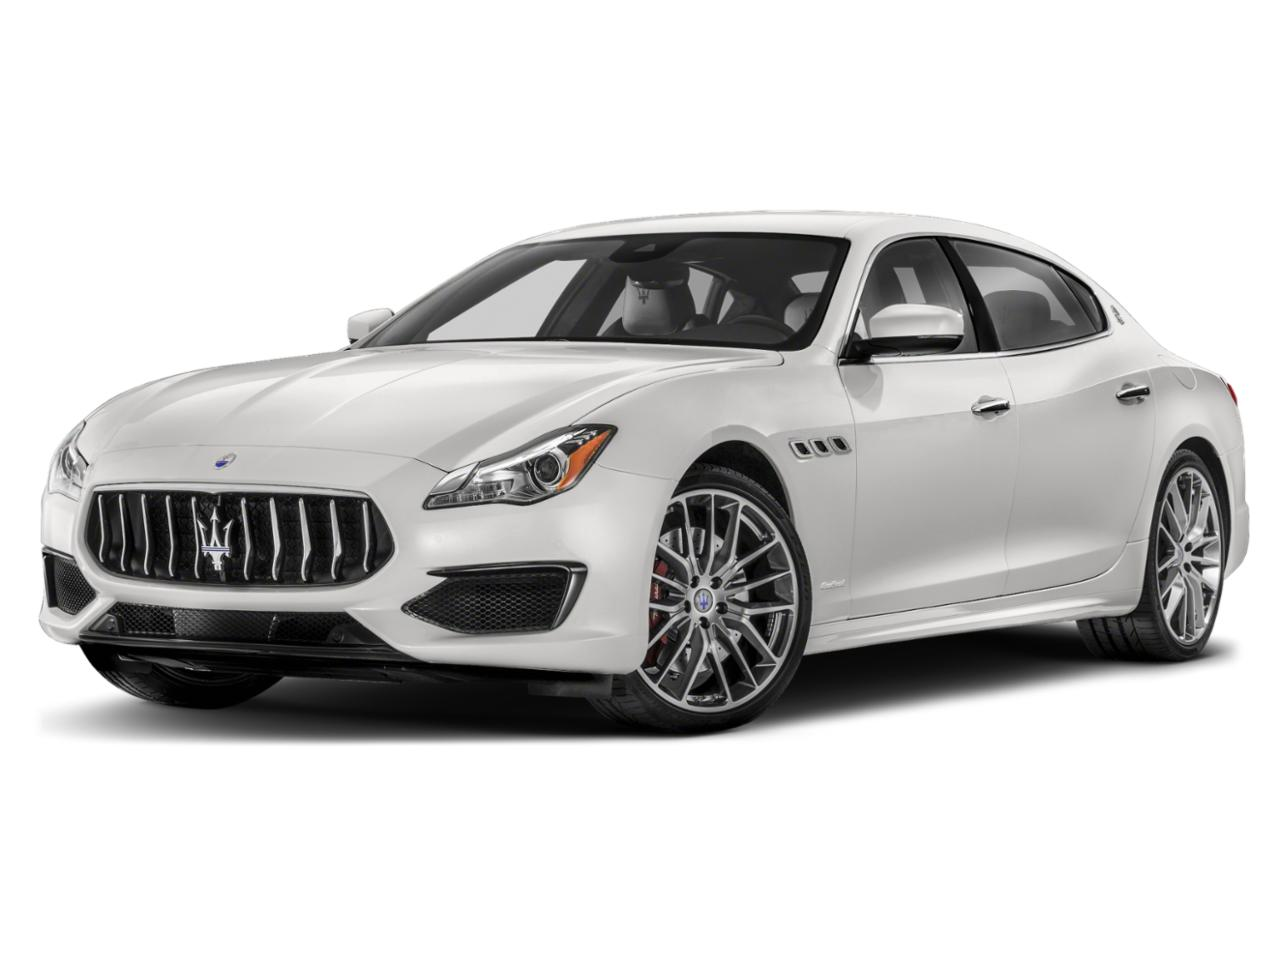 2020 Maserati Quattroporte Vehicle Photo in Appleton, WI 54913